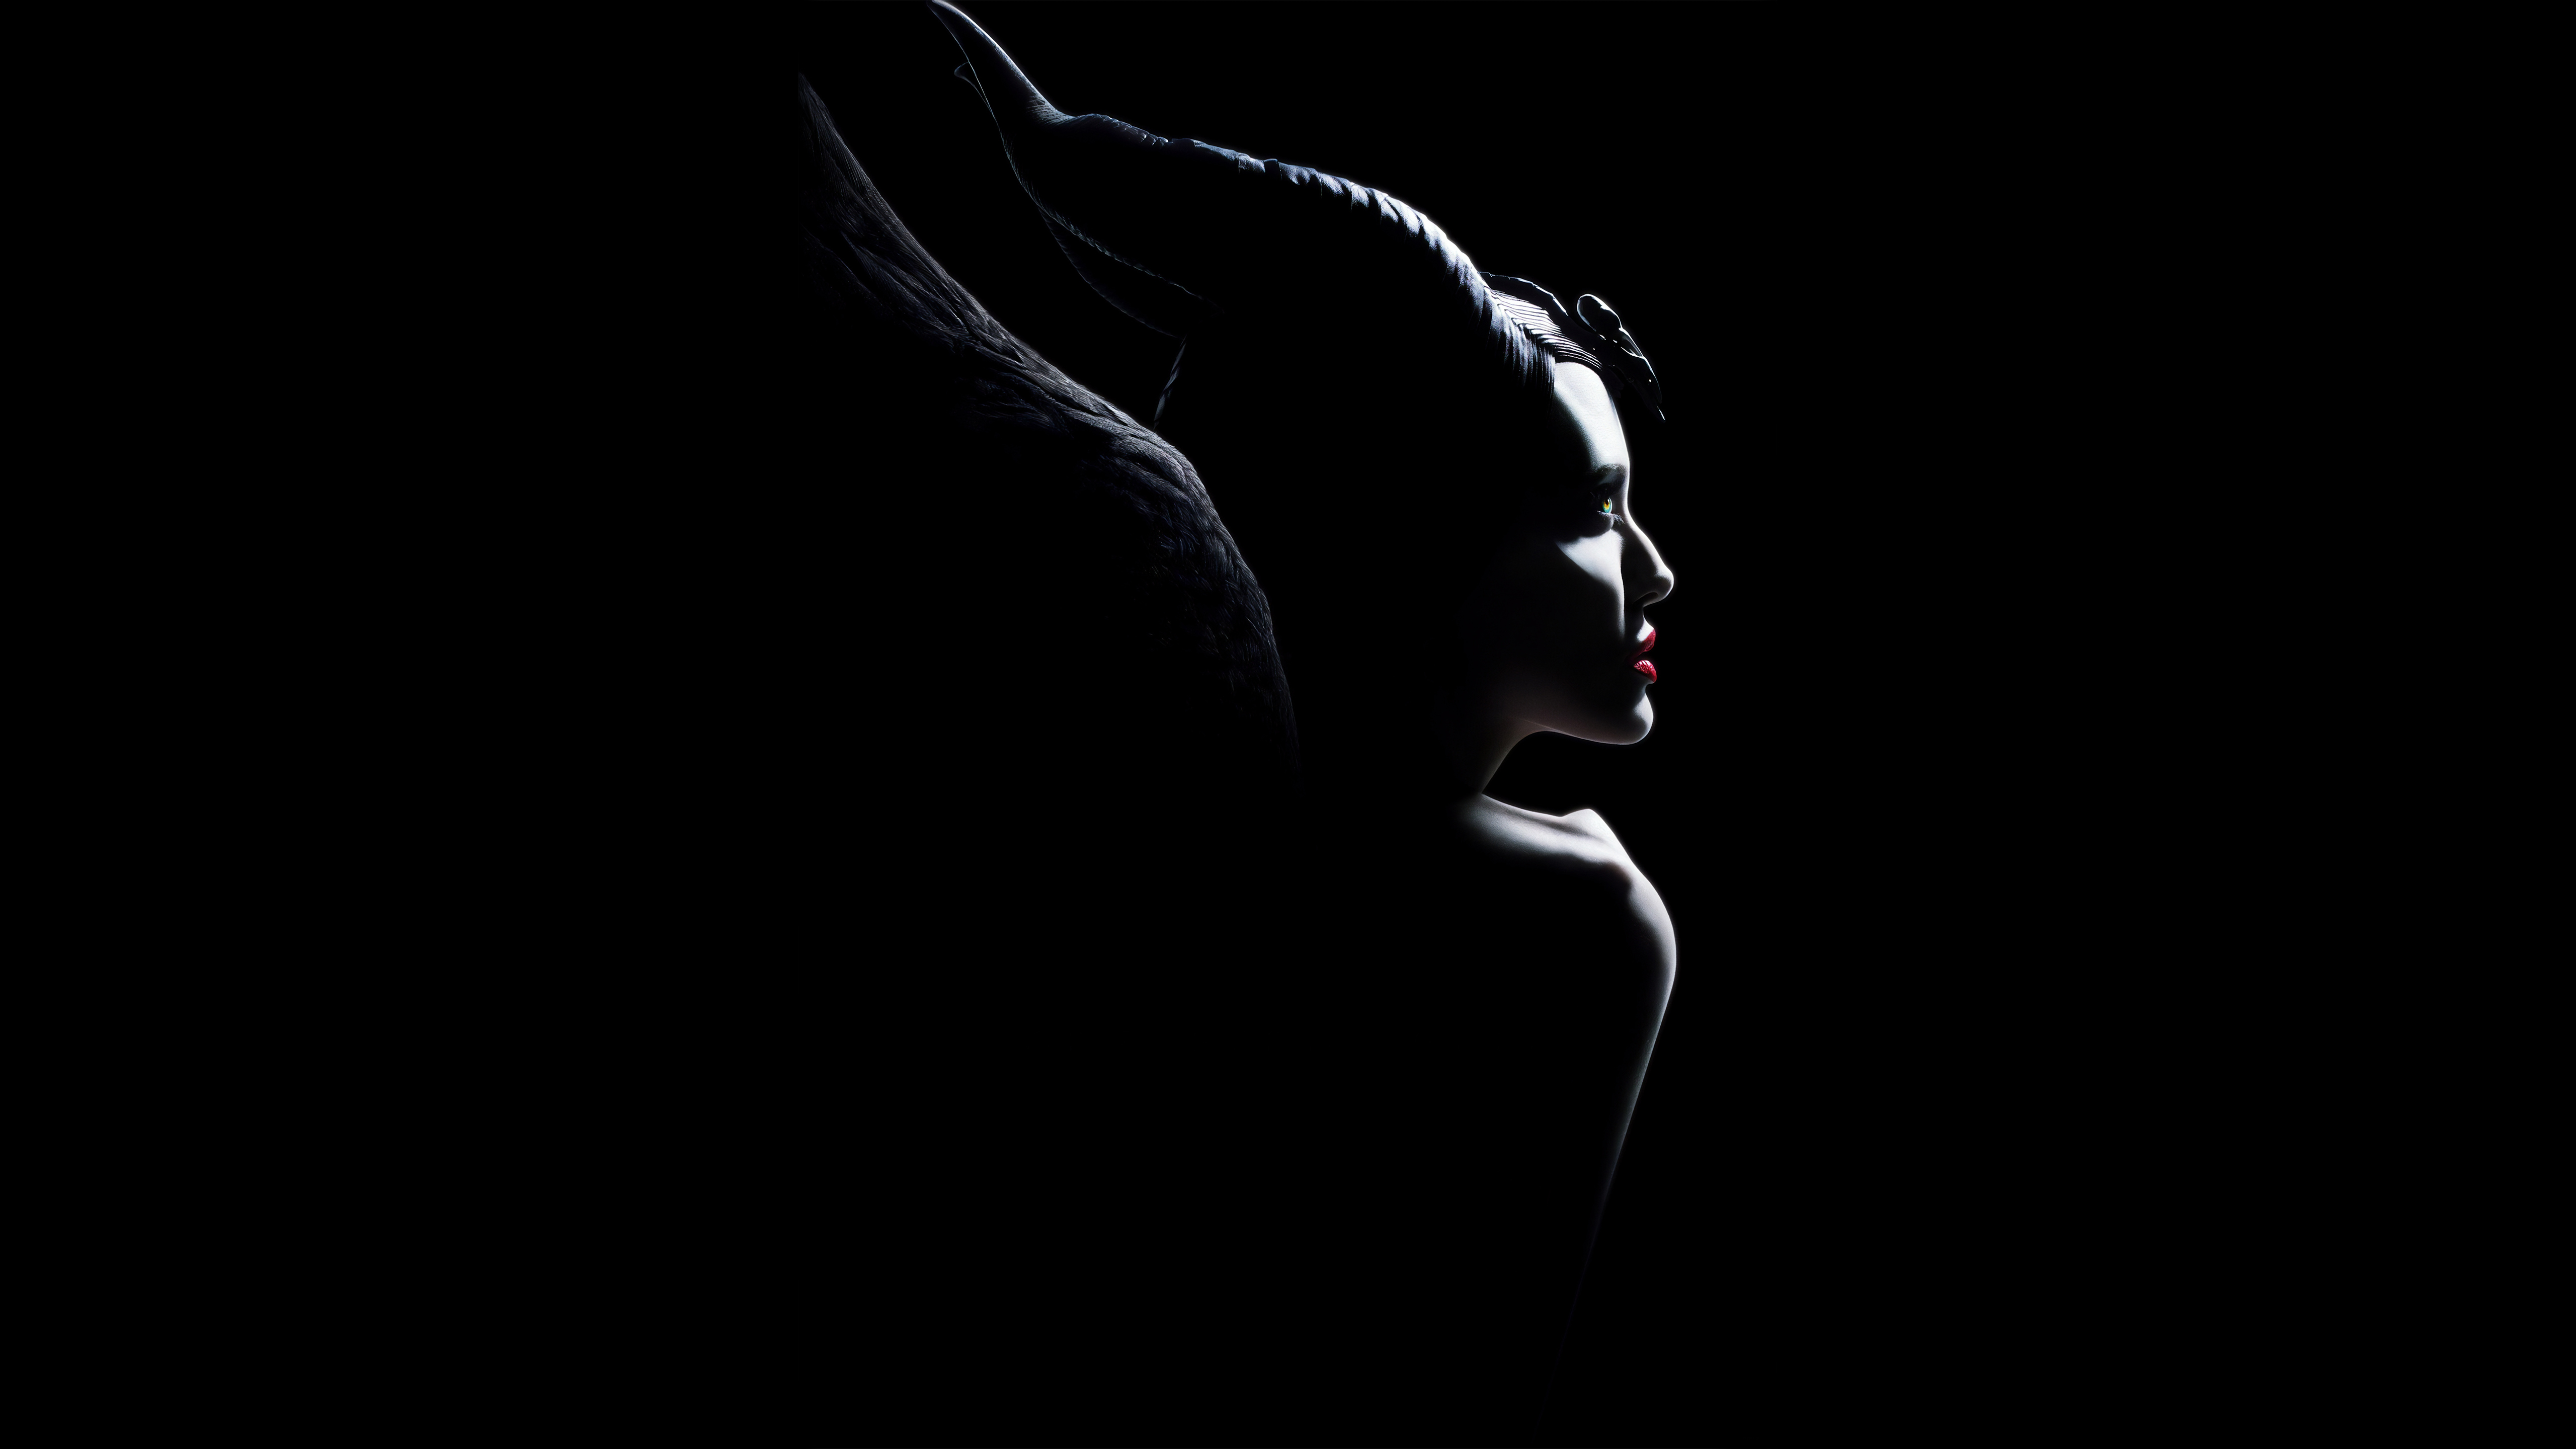 Maleficent Mistress Of Evil 2019 Hd Movies 4k Wallpapers